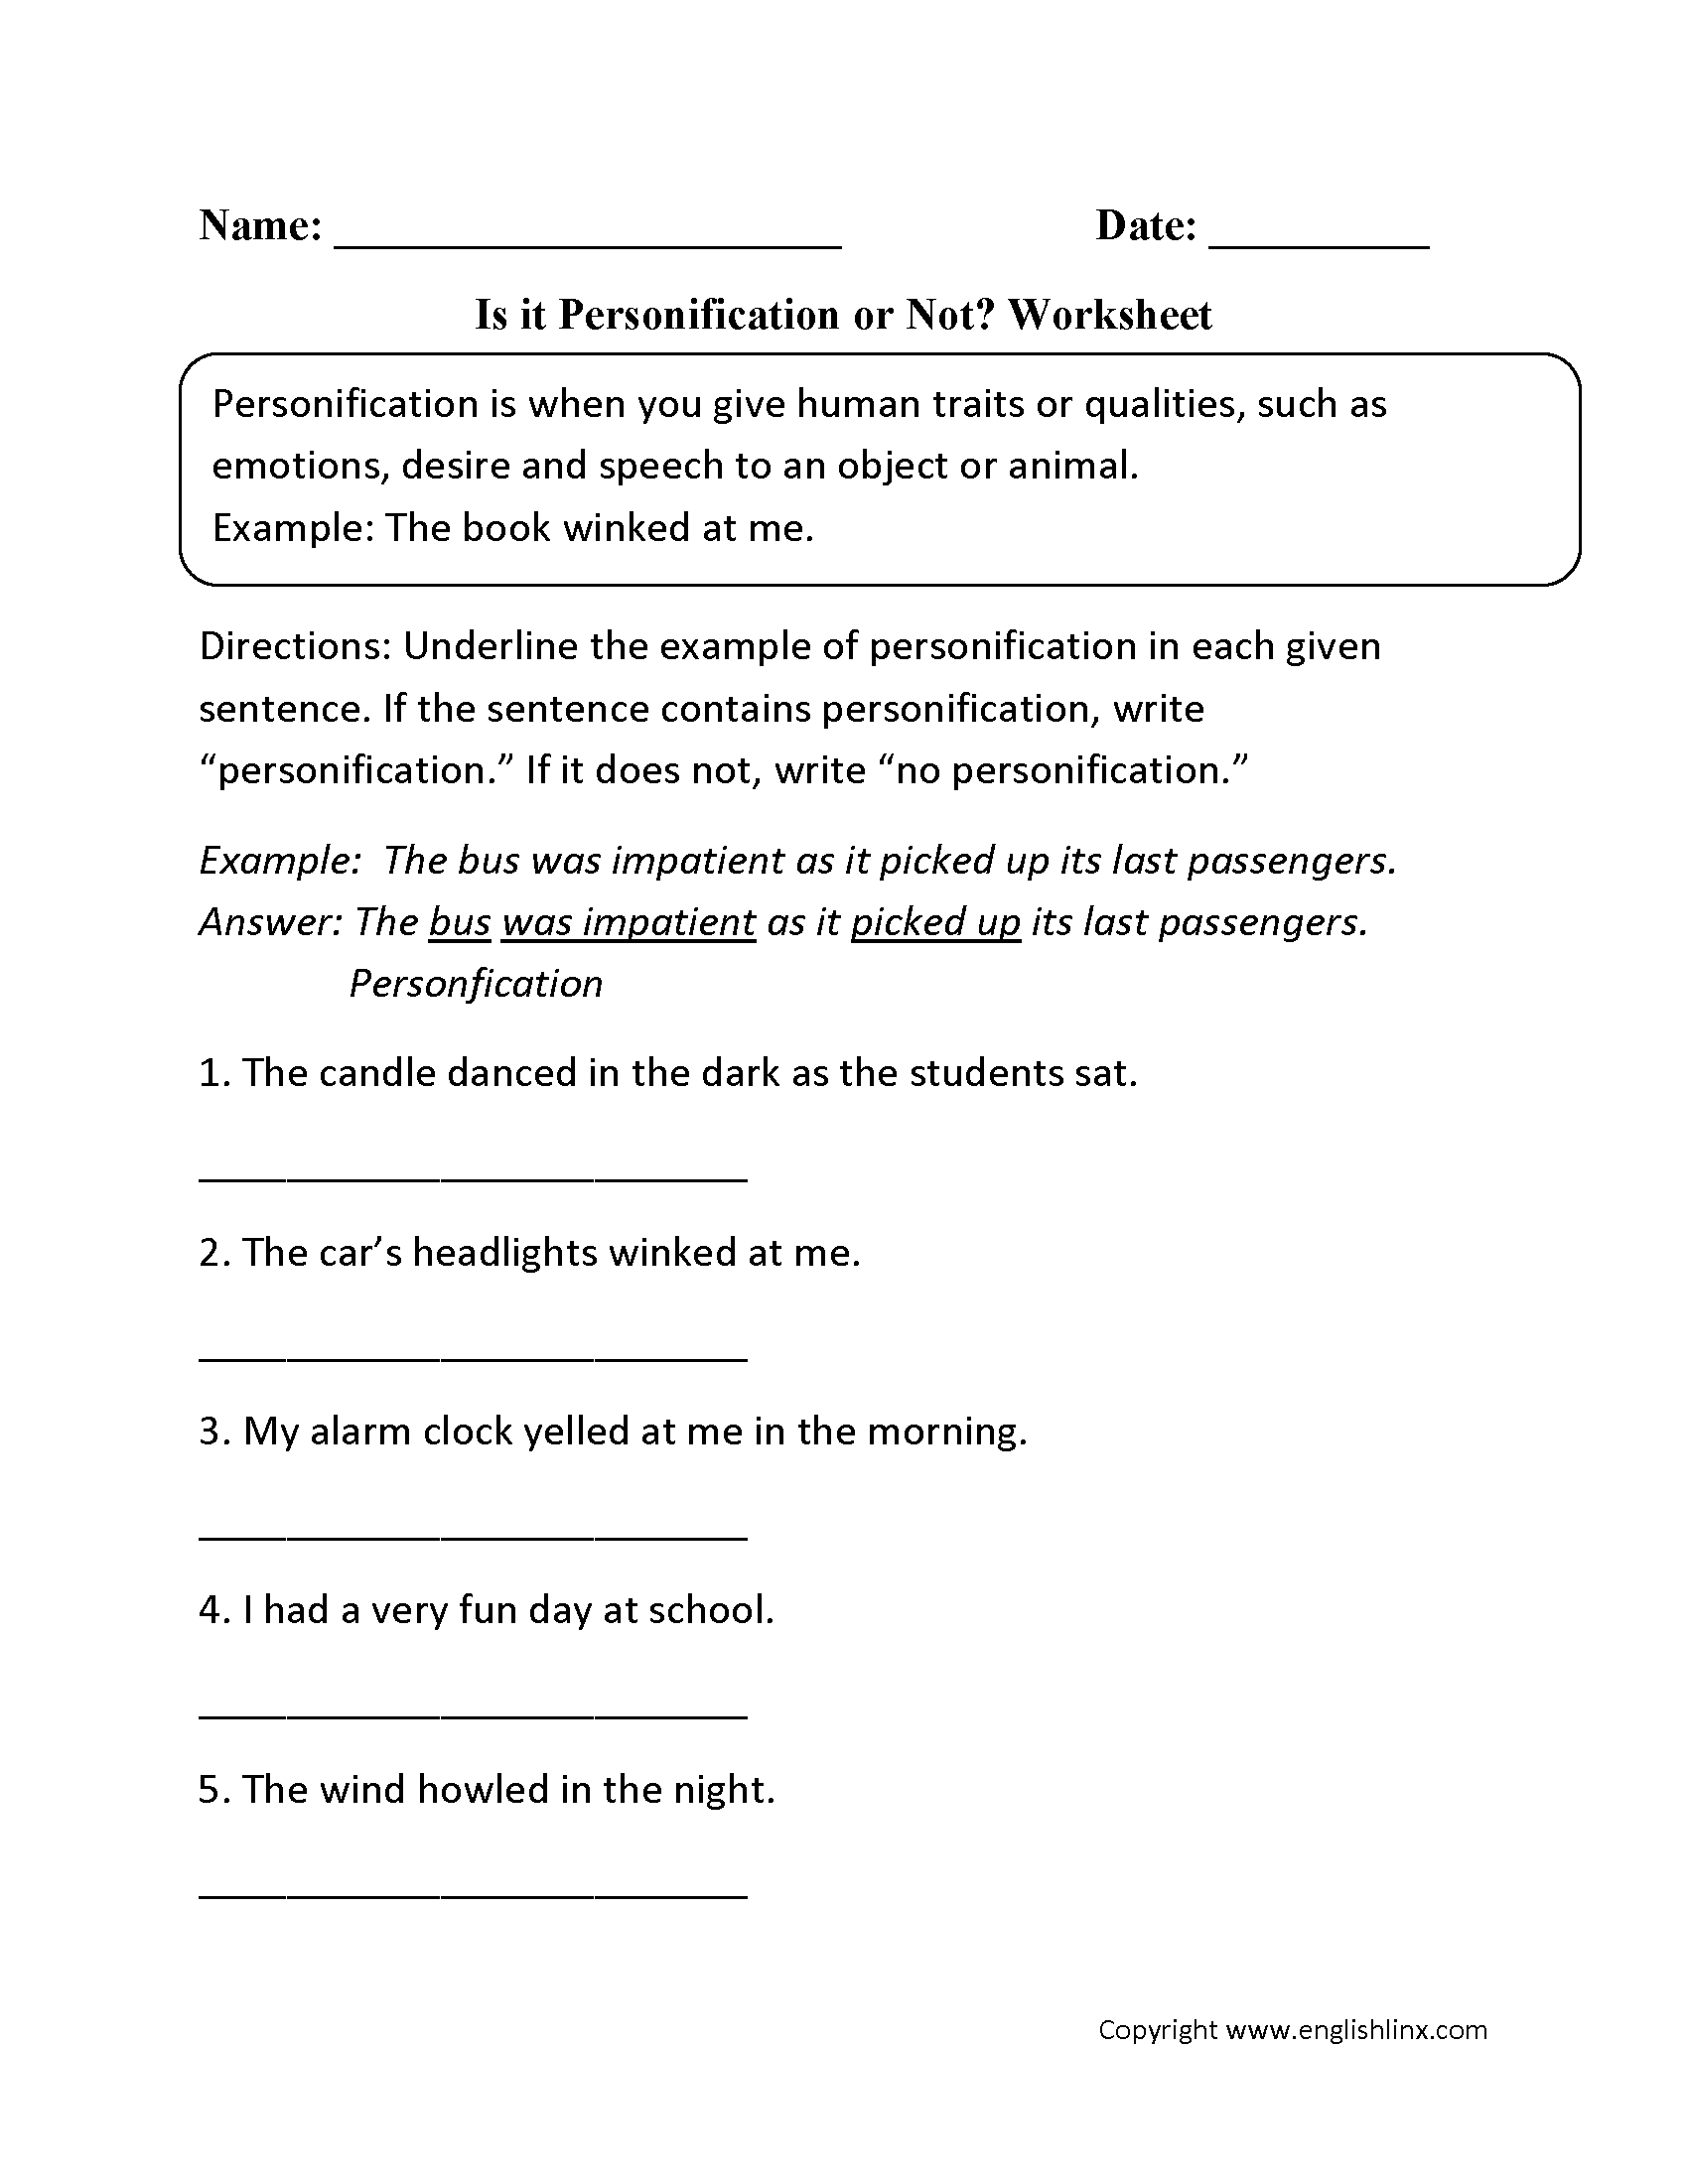 sample of personification sample close reading virtually class  figurative language worksheets personification worksheets is it personification or not worksheet personification essay examples personification